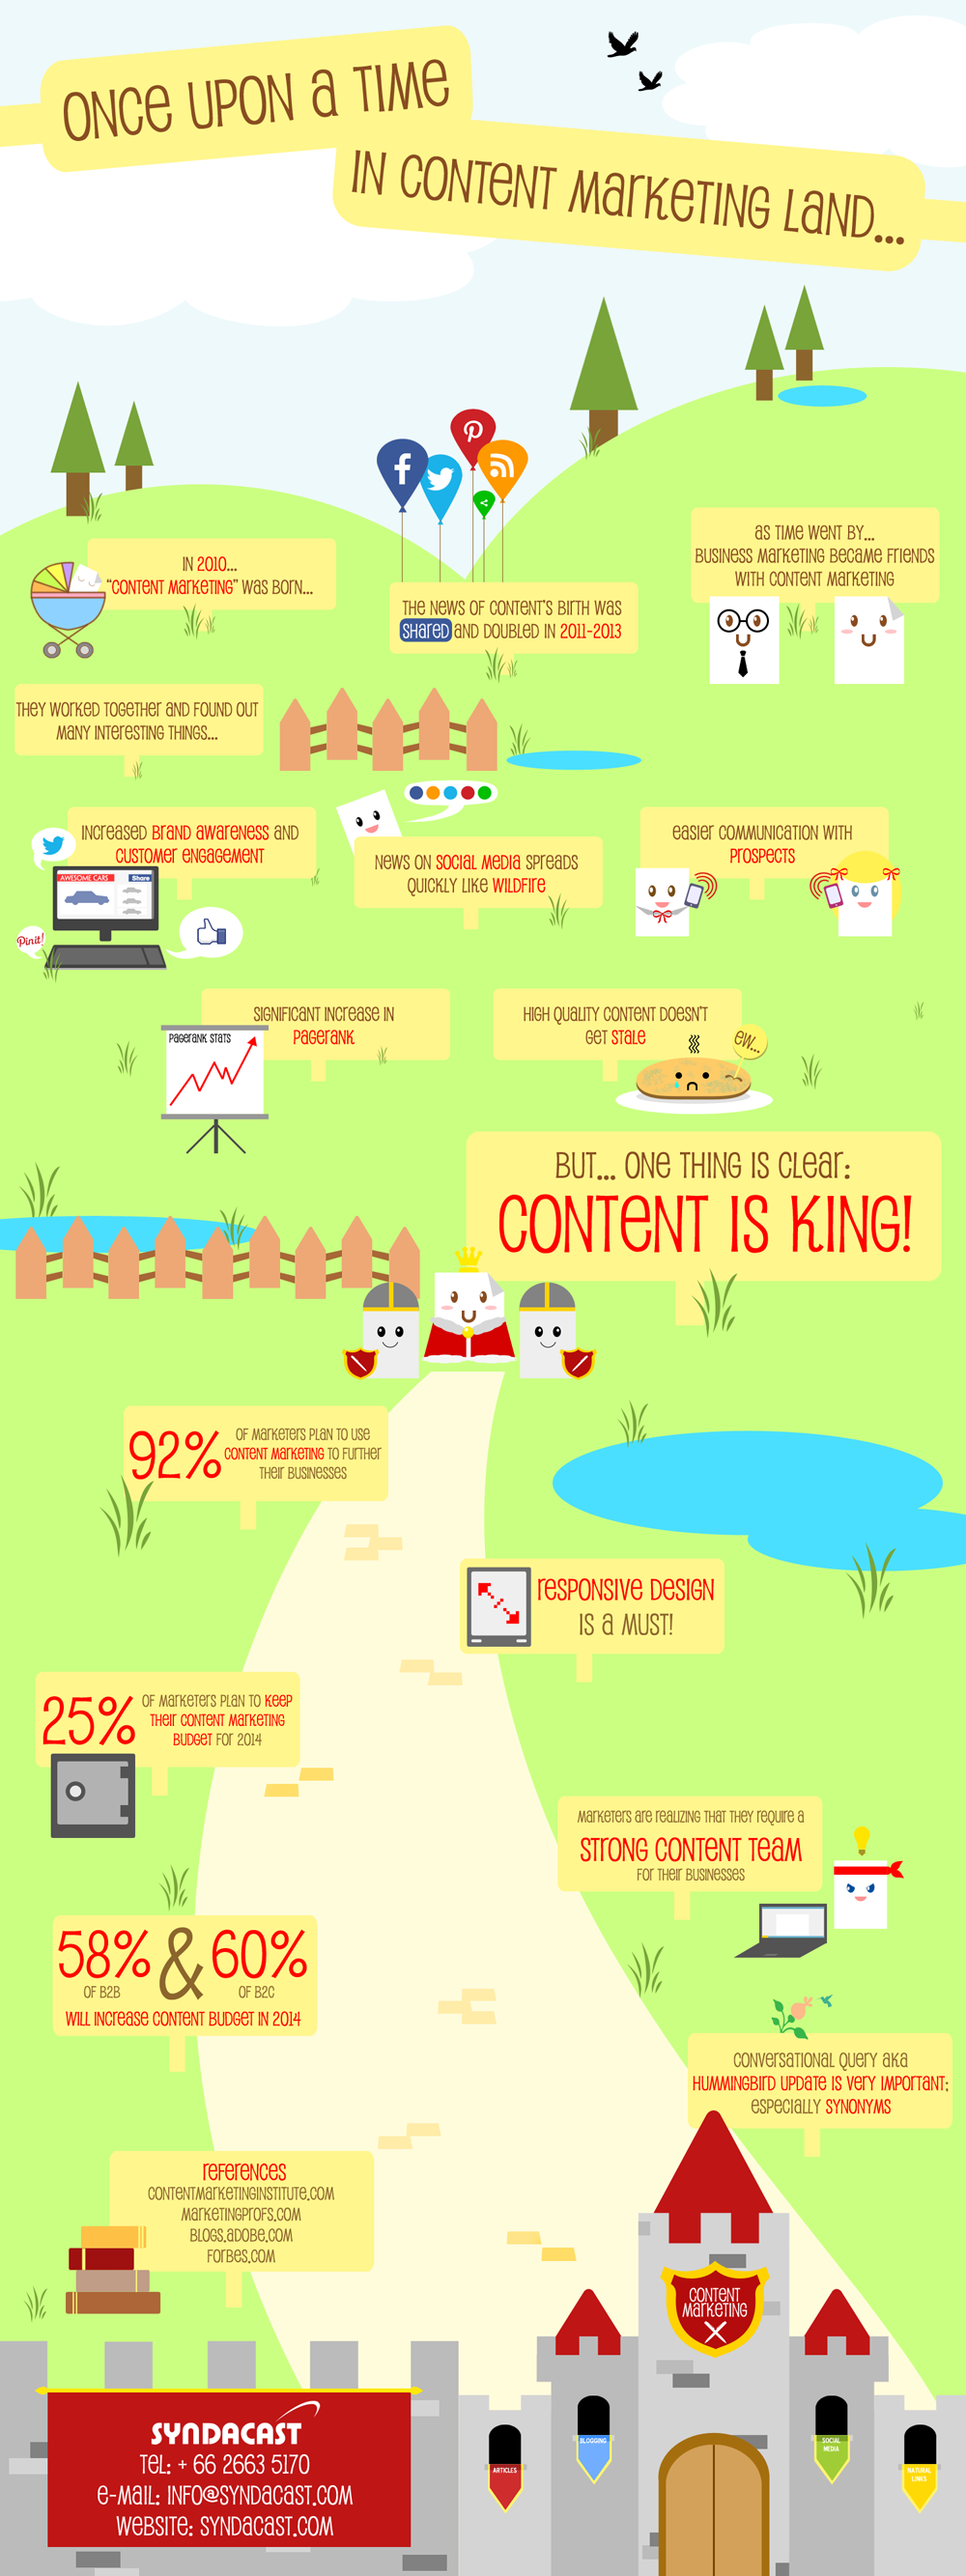 Once Upon A Time in #ContentMarketing Land - #infographic #socialmedia